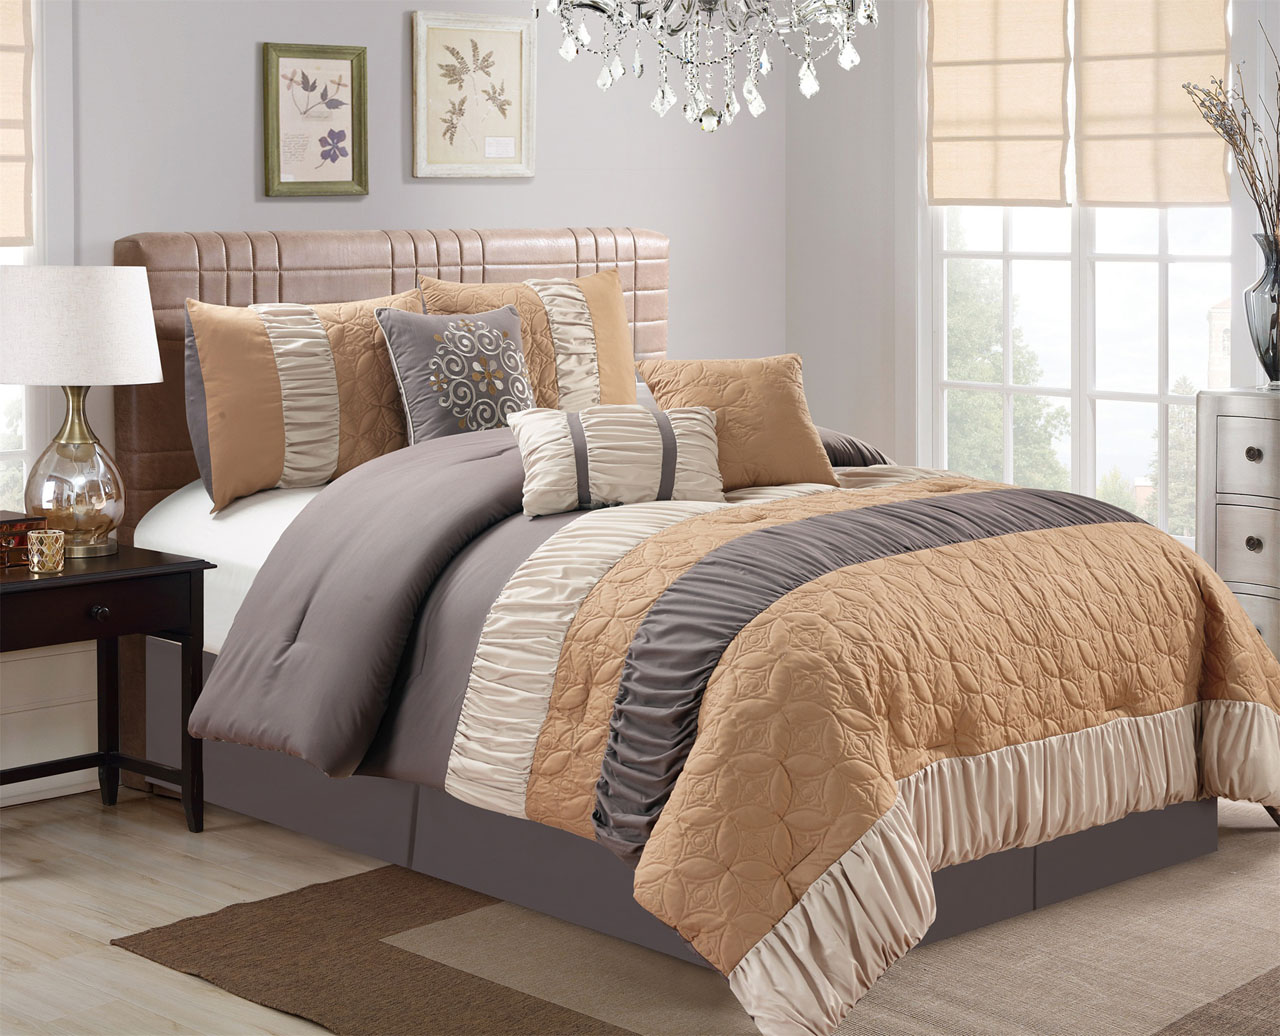 Gray Embroidered Comforter : Piece pinched pleat floral embroidered camel gray beige